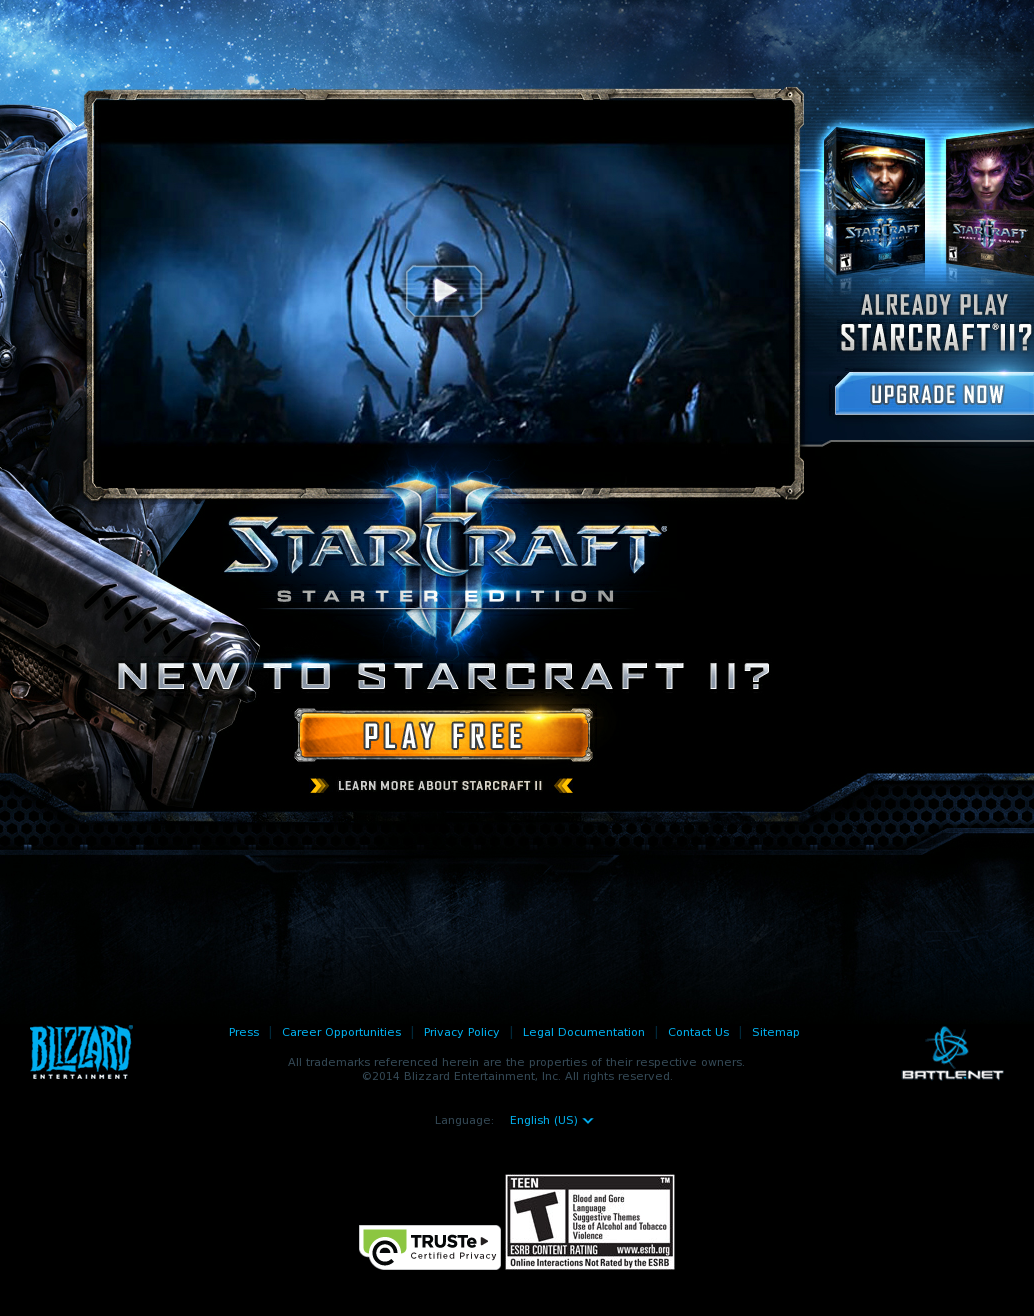 Owler Reports - Press Release: StarCraft : Ready to Roll Out